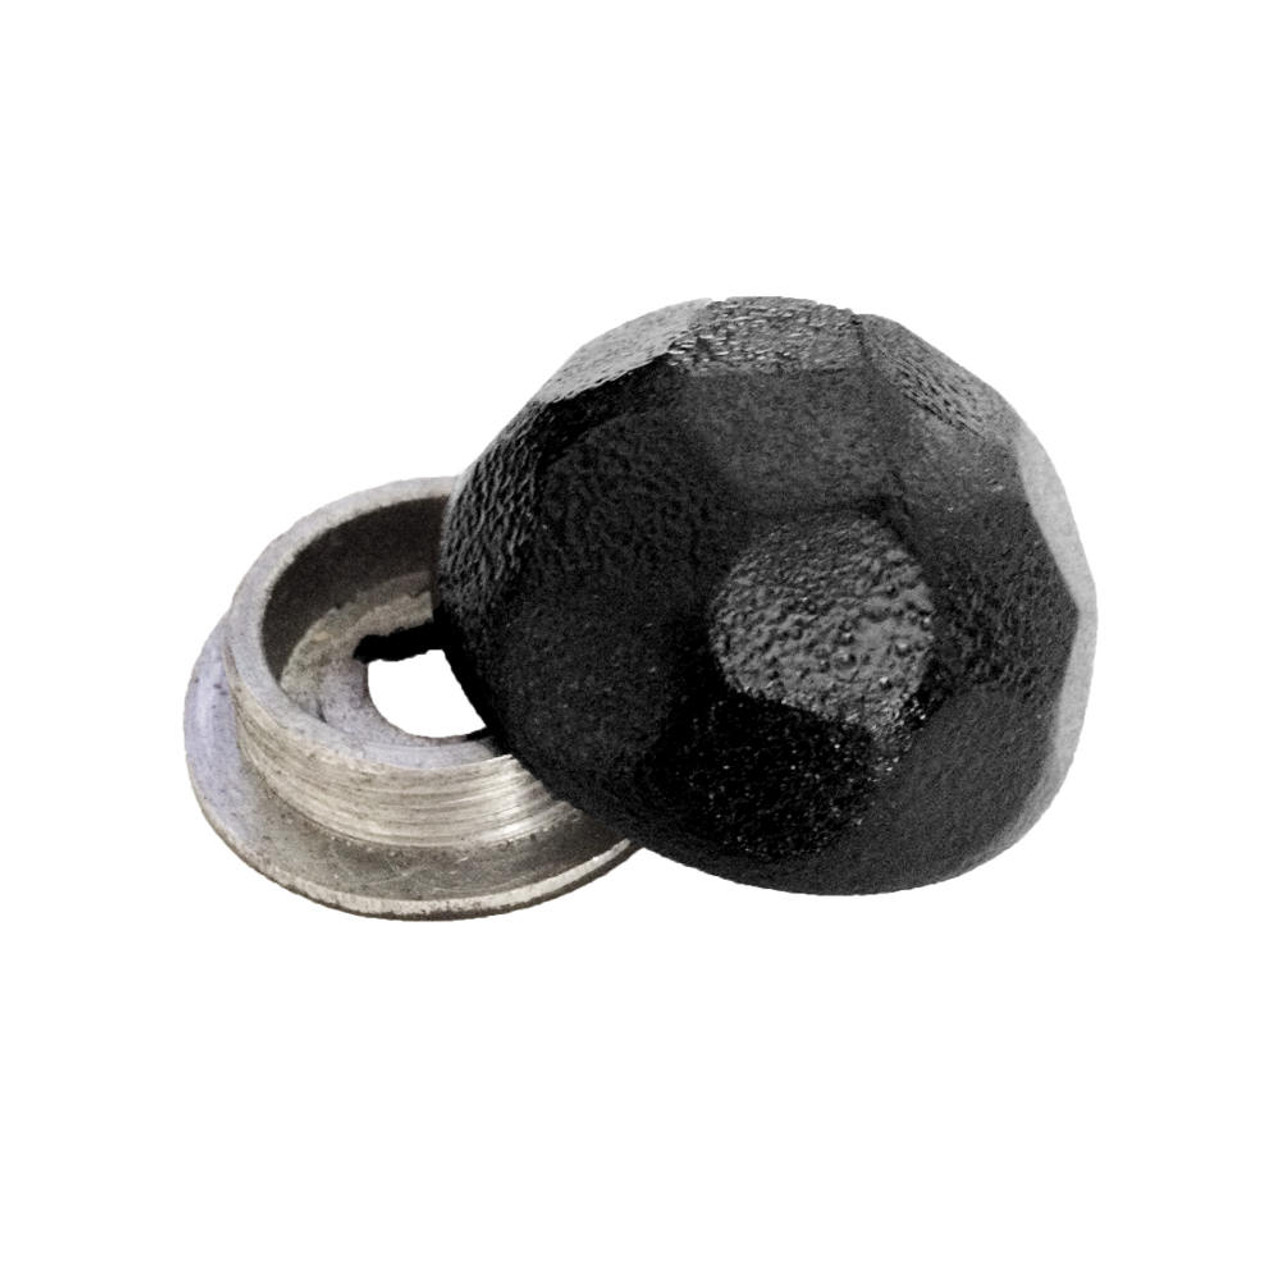 OZCO OWT HDCN Hammered Dome Cap Nut